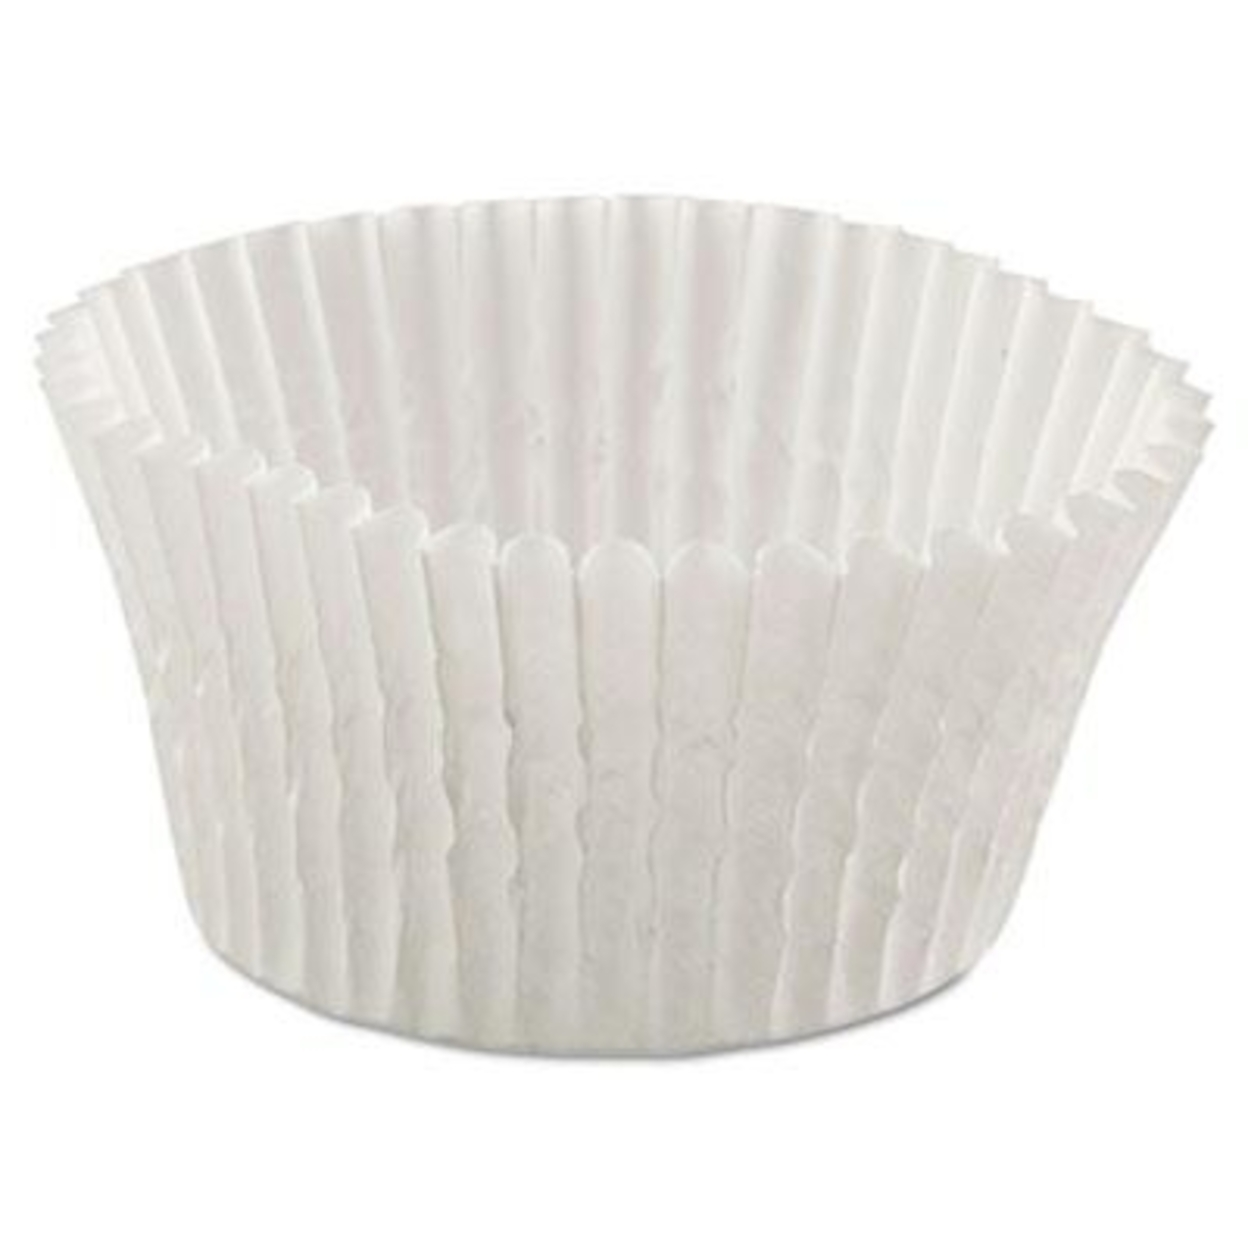 Hoffmaster Fluted Bake Cups 5a3c64b12a00e45fcf4b5c12